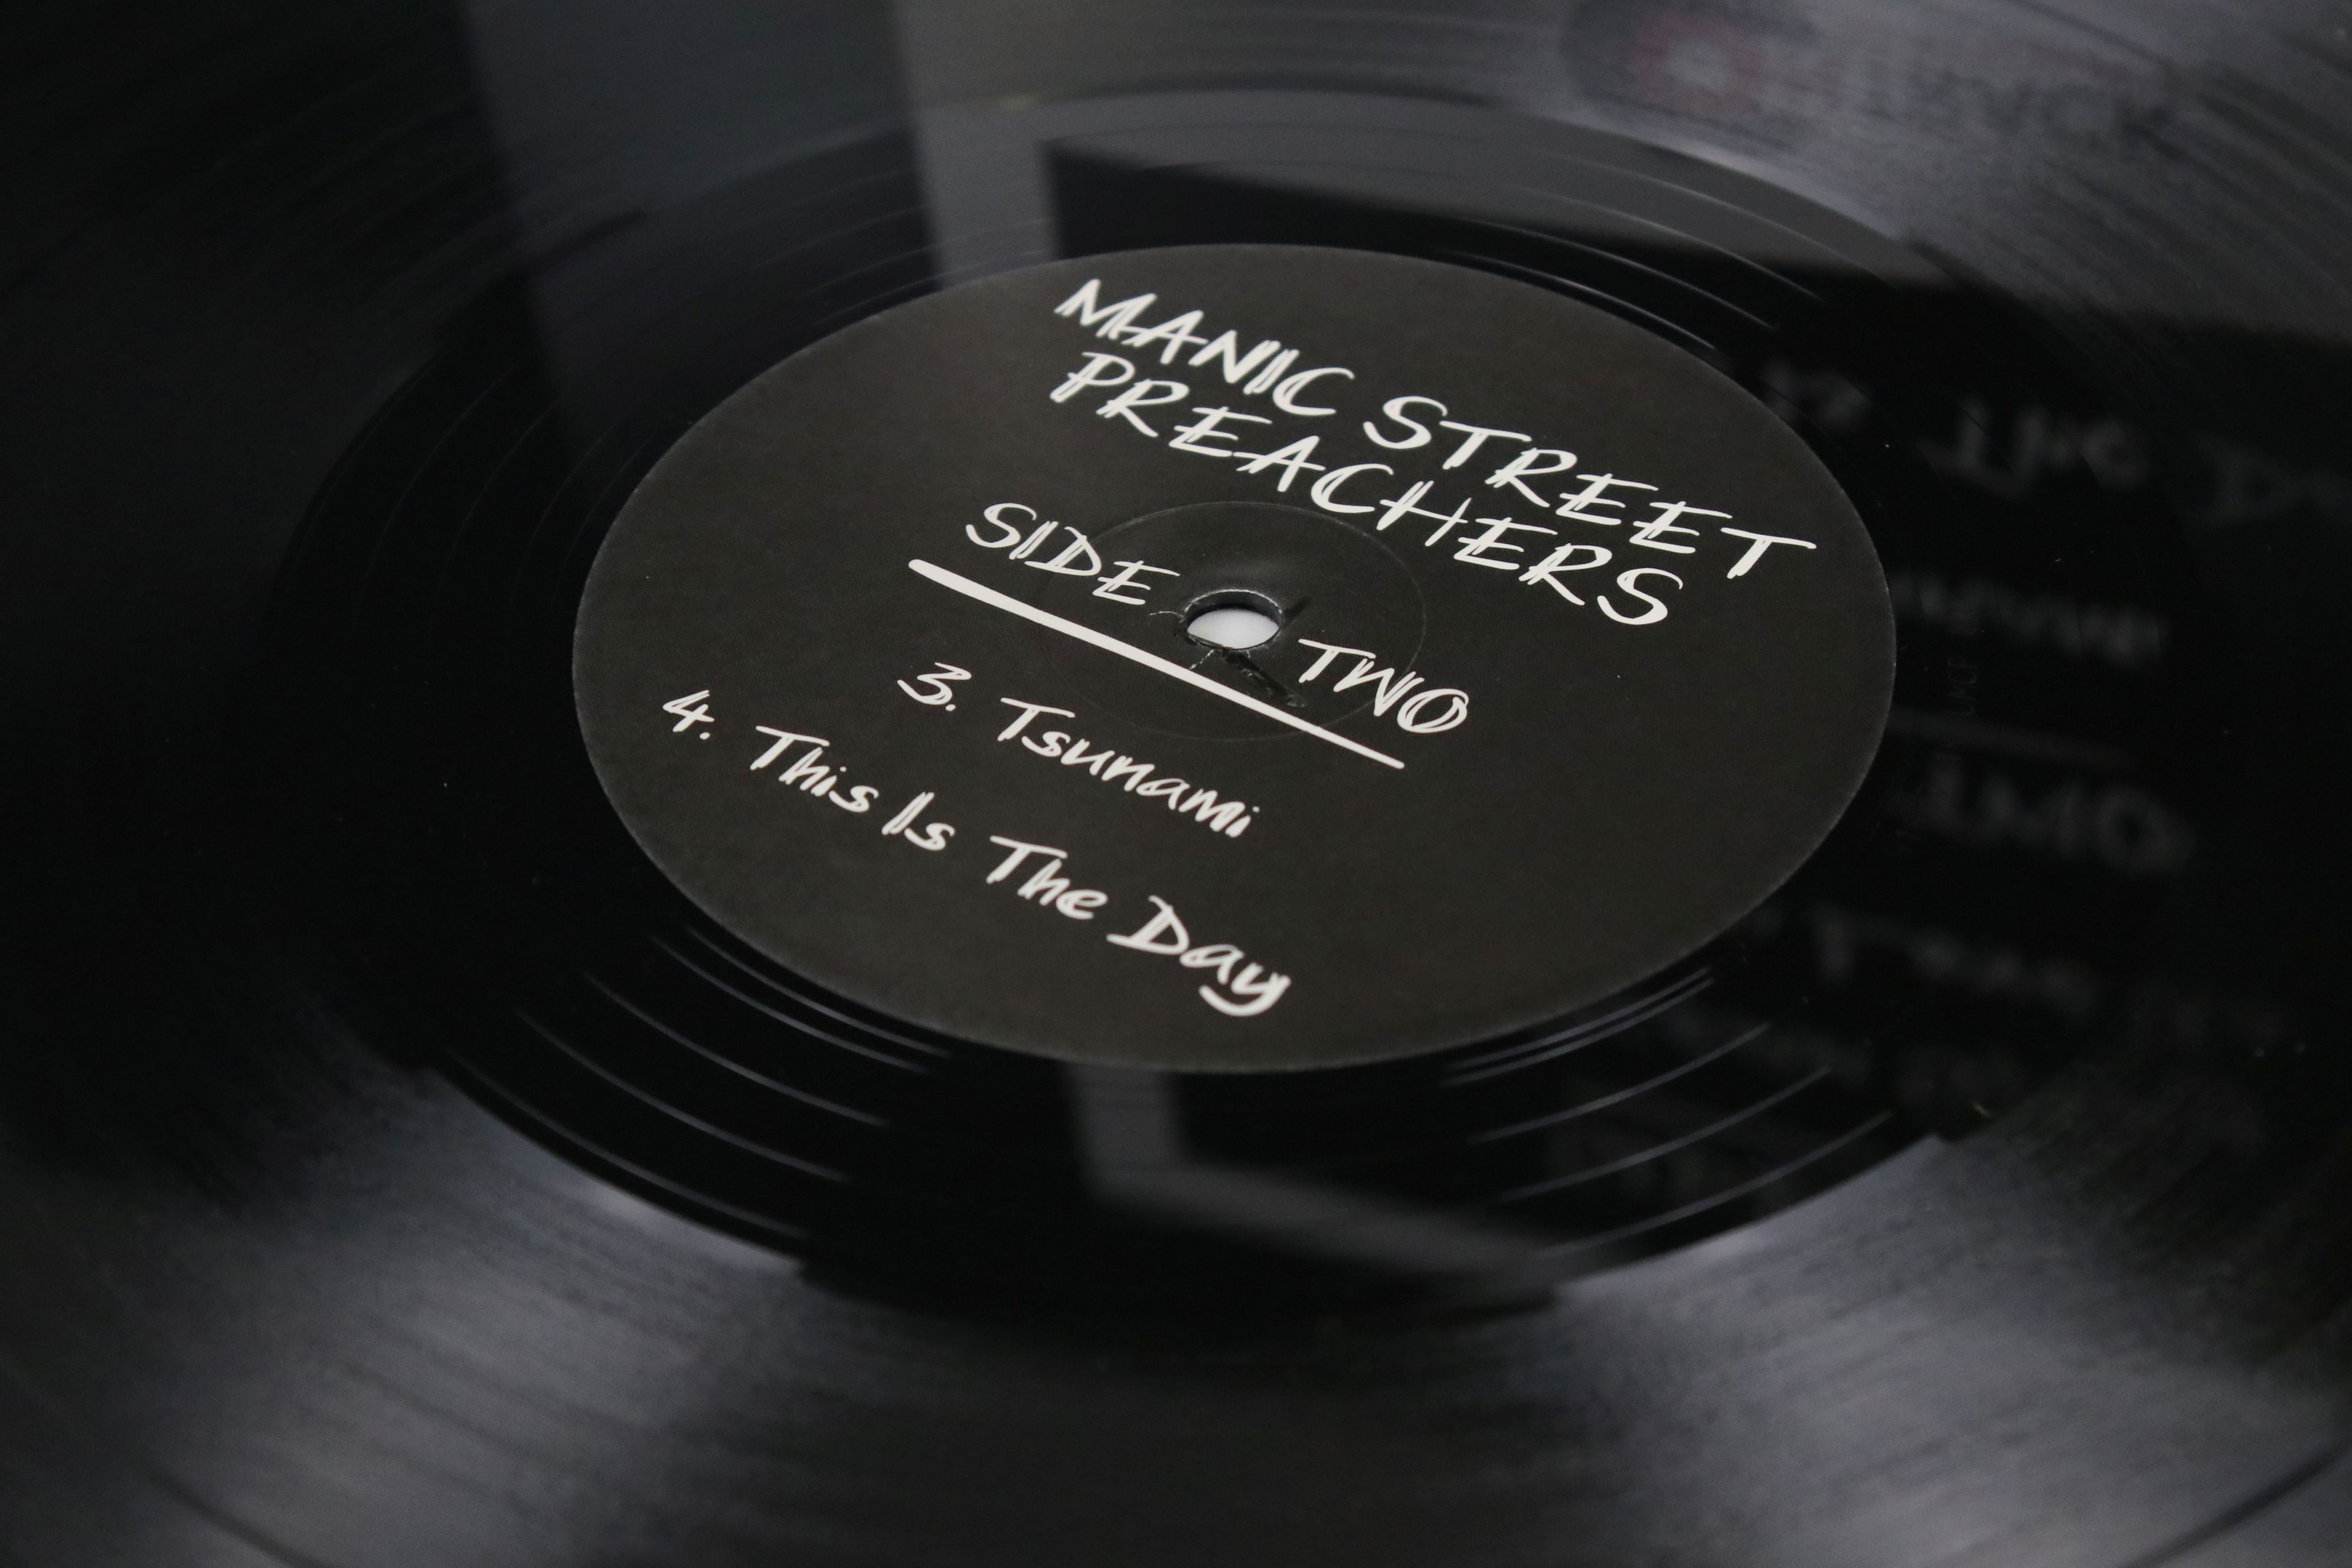 """Vinyl - Manic Street Preachers 'Memory Is The Greatest Gallery...' 12"""" single On Track with SEAT - Image 4 of 4"""